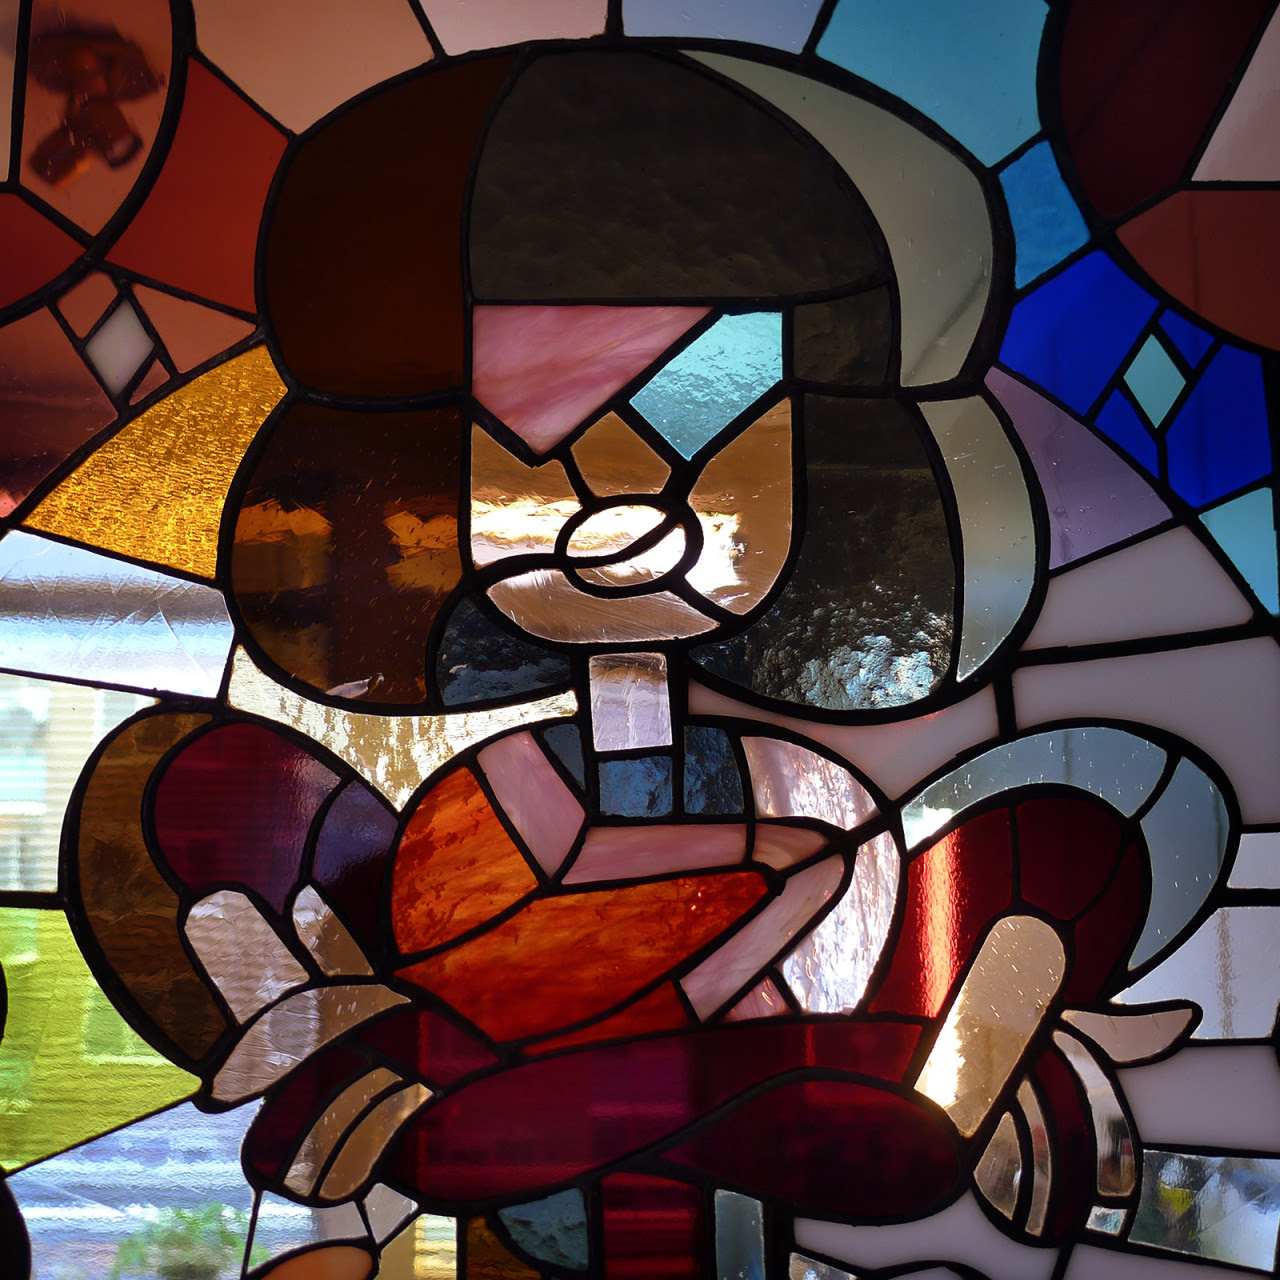 I made a SU inspired stained-glass design and collaborated with @stainedglassgeek who made it in an actual stained-glass window! So proud of the result!! :D If you want more geeky stained glass...